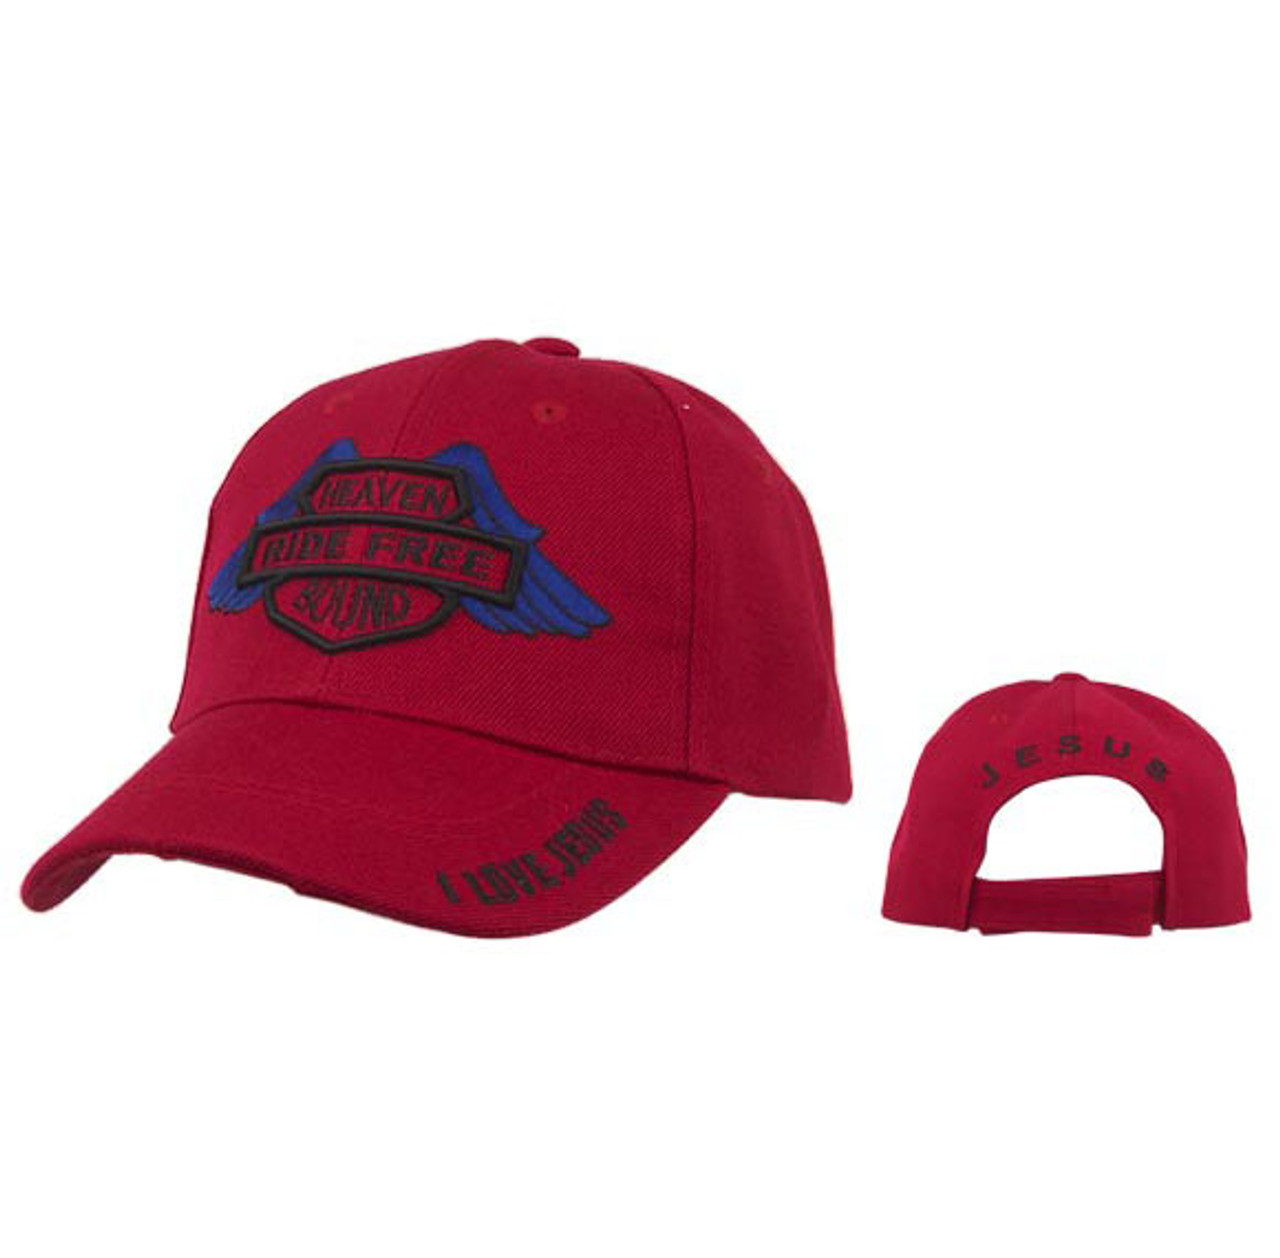 Red Heaven Bound   Ride Free   Wholesale Baseball Caps